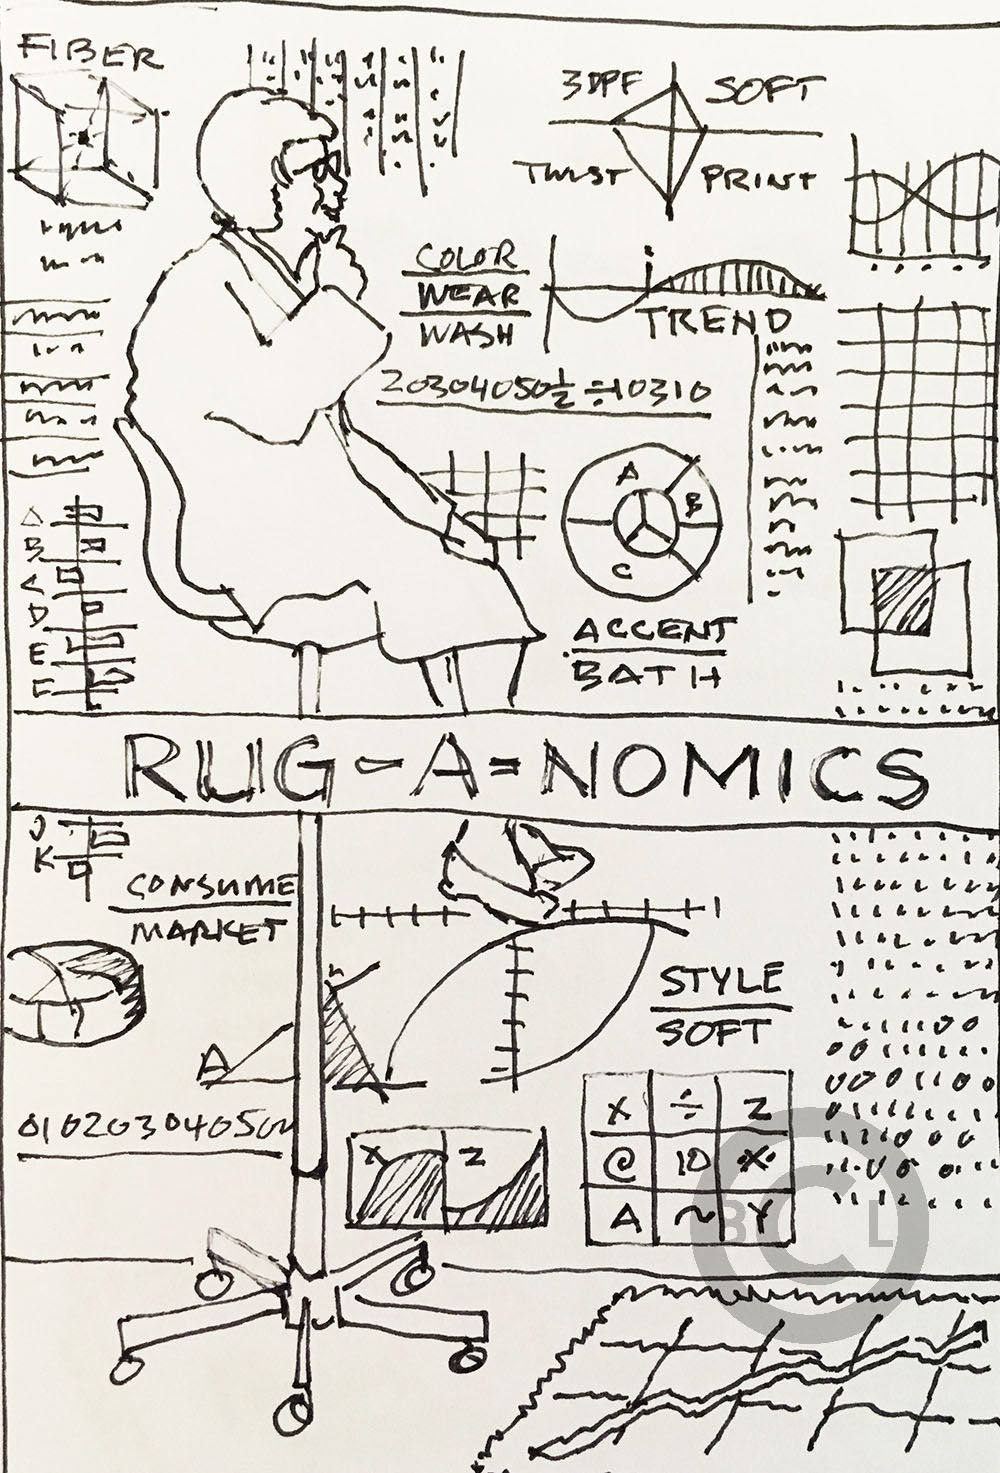 A sketch for a rug promotion. Drawing by Brad C. Lawley